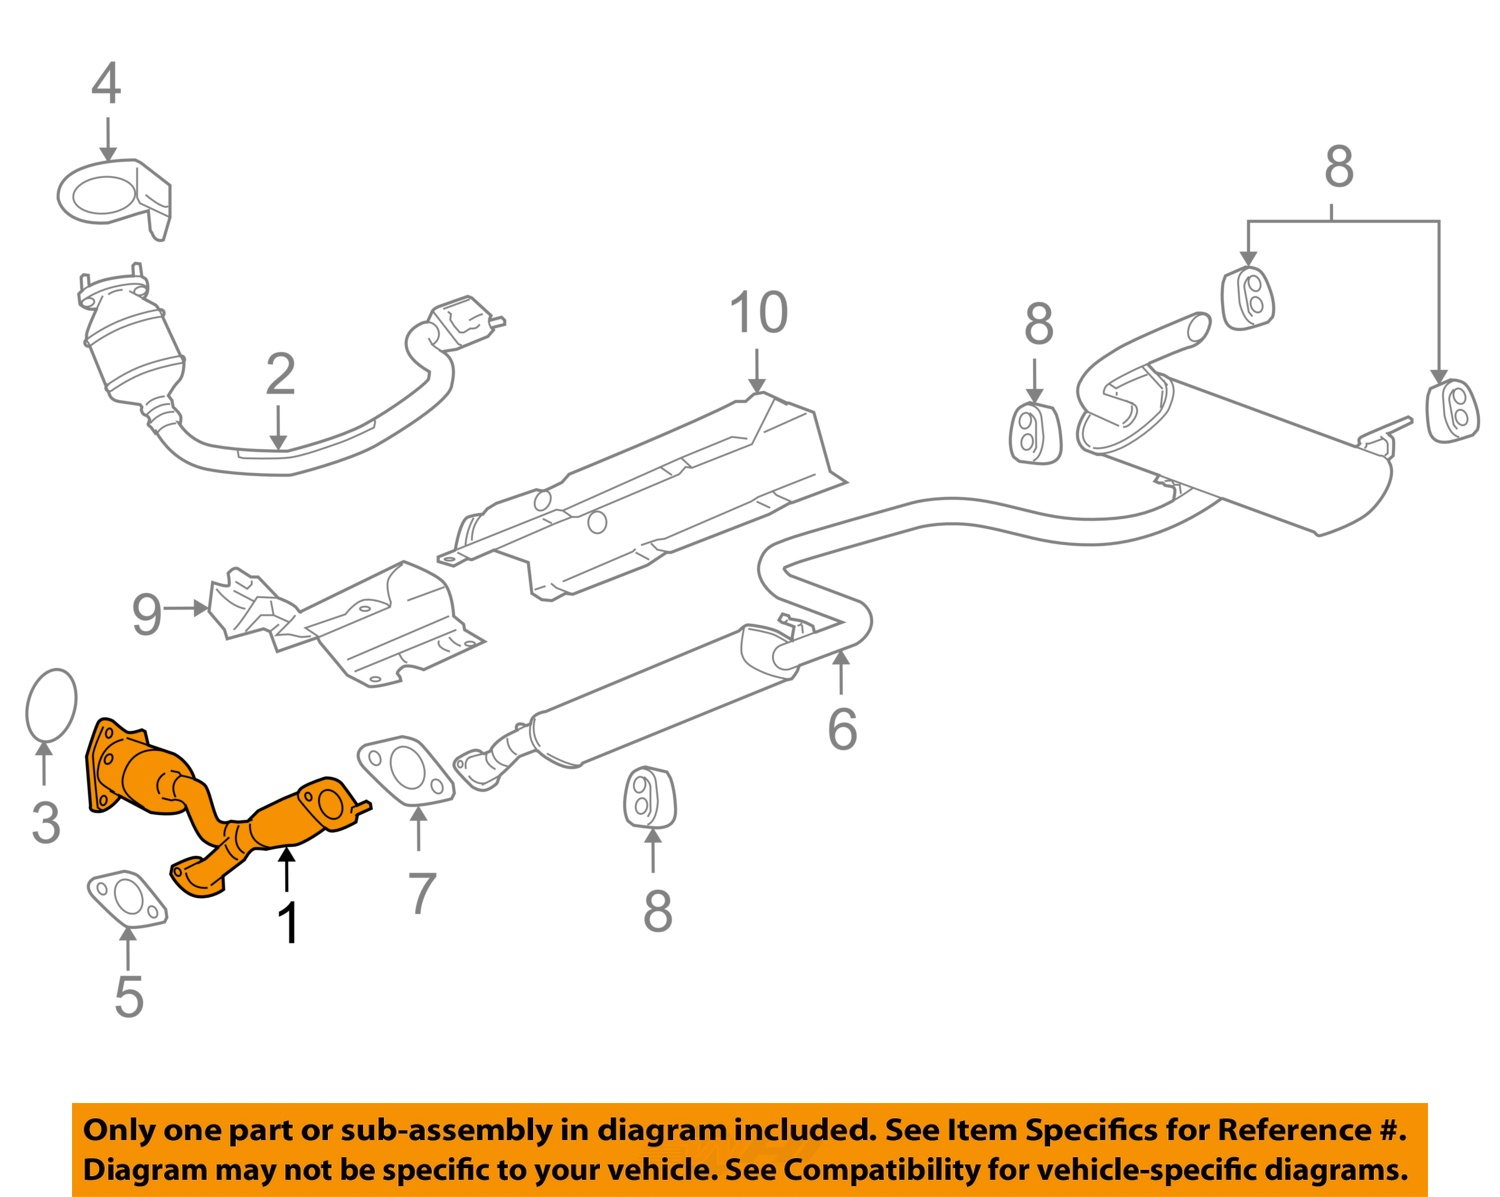 Pontiac G6 3 5l Engine Diagram Start Building A Wiring Transmission Serpentine Belt Trusted Rh Dafpods Co 2008 Exhaust